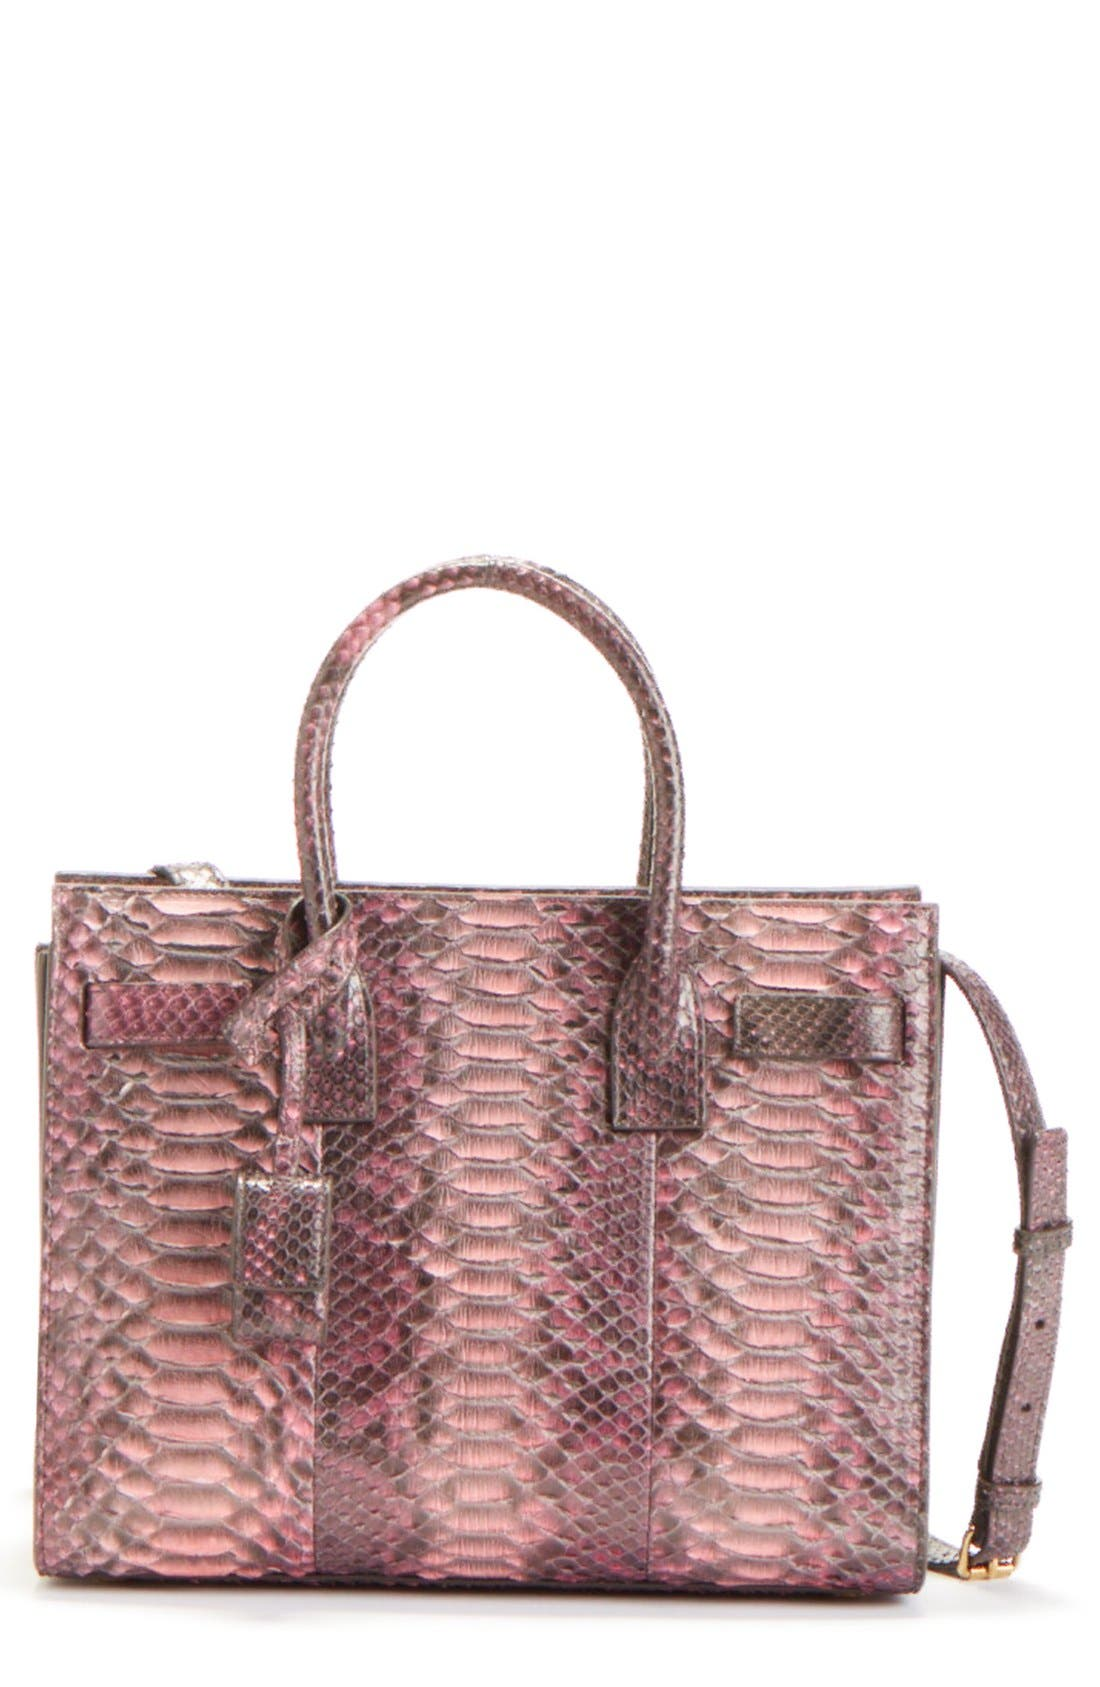 'Baby Sac de Jour' Genuine Python Tote,                             Main thumbnail 1, color,                             ROSE/BROWN/GREY